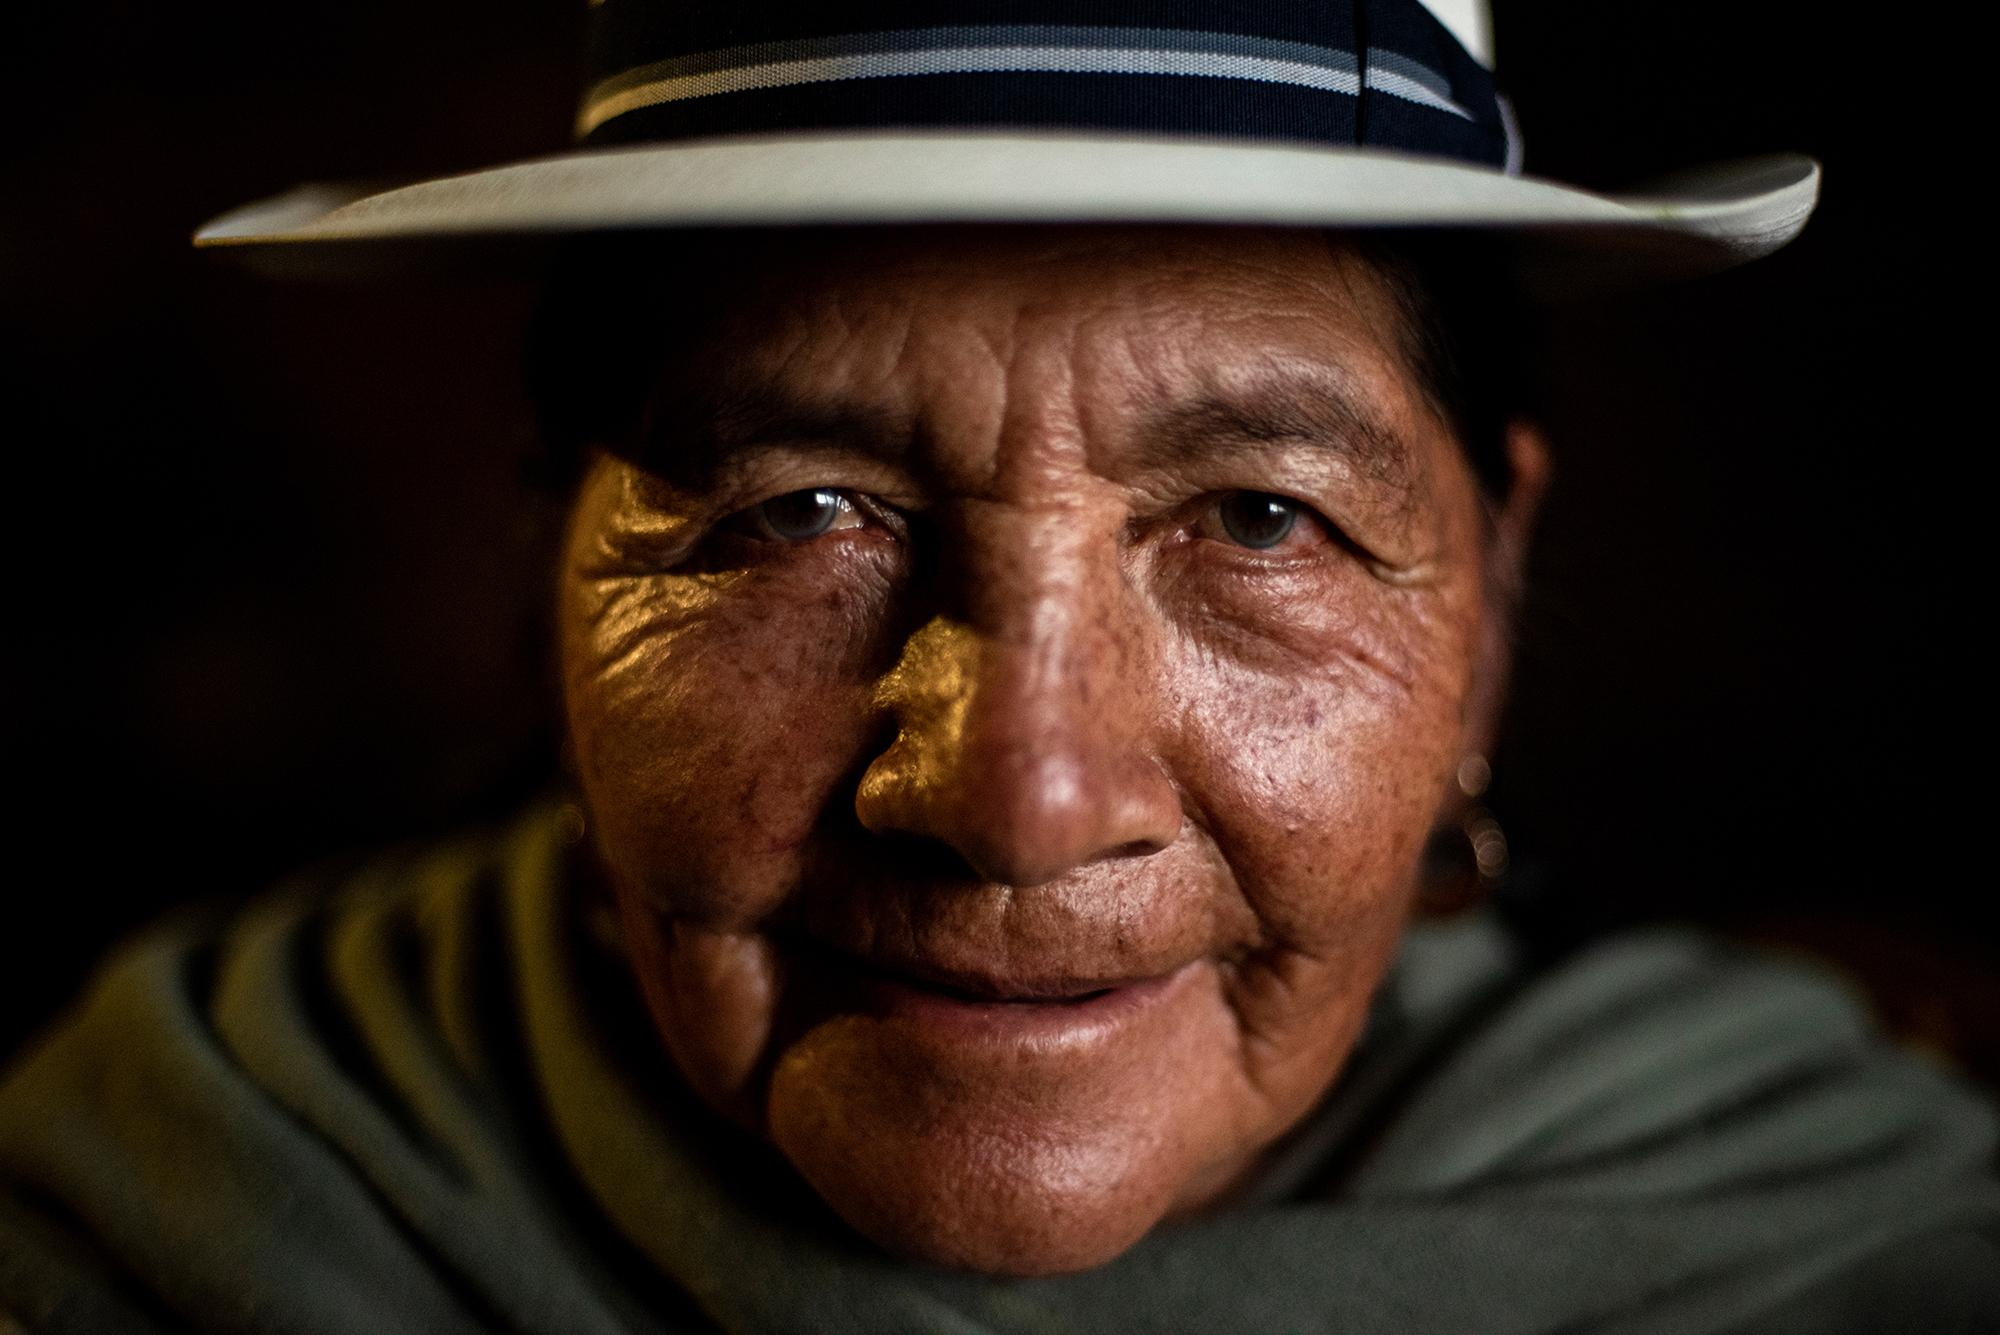 Julia Tacuri (79) is a Kañari indigenous woman who is part of the defense of the water. Her three sons immigrated to the US 30 years ago after de ending 90´s economic crisis in Ecuador. She works in agriculture and taking care of her animals in Tarqui community. March 21, 2020.Cuenca, Ecuador. Johis Alarcón for The New York Times.